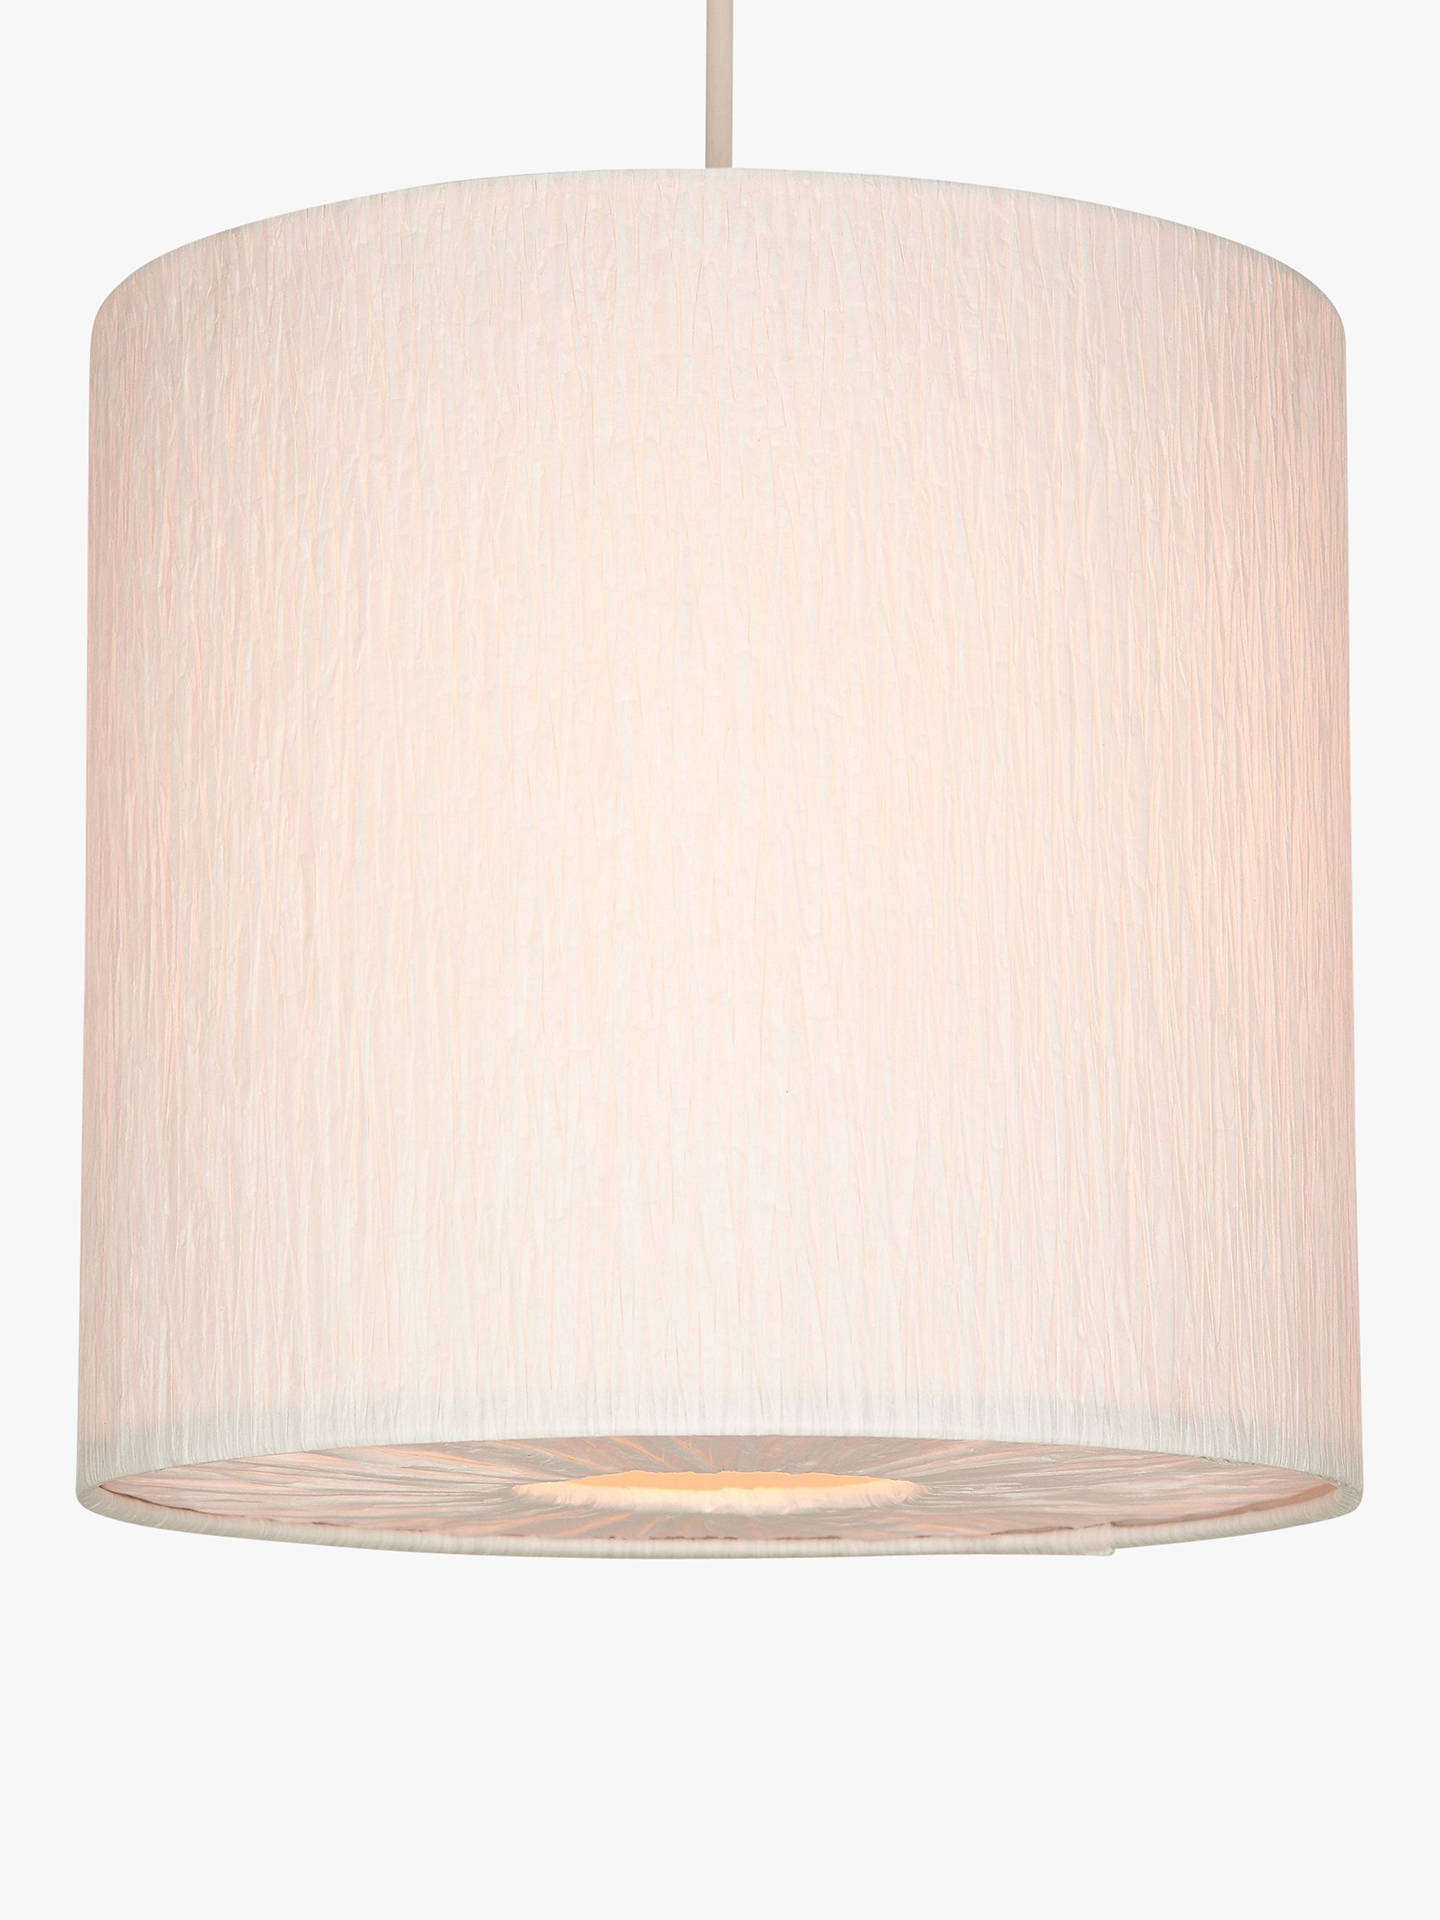 Buy John Lewis & Partners Small Libby Easy-to-Fit Ceiling Shade, Cream Online at johnlewis.com